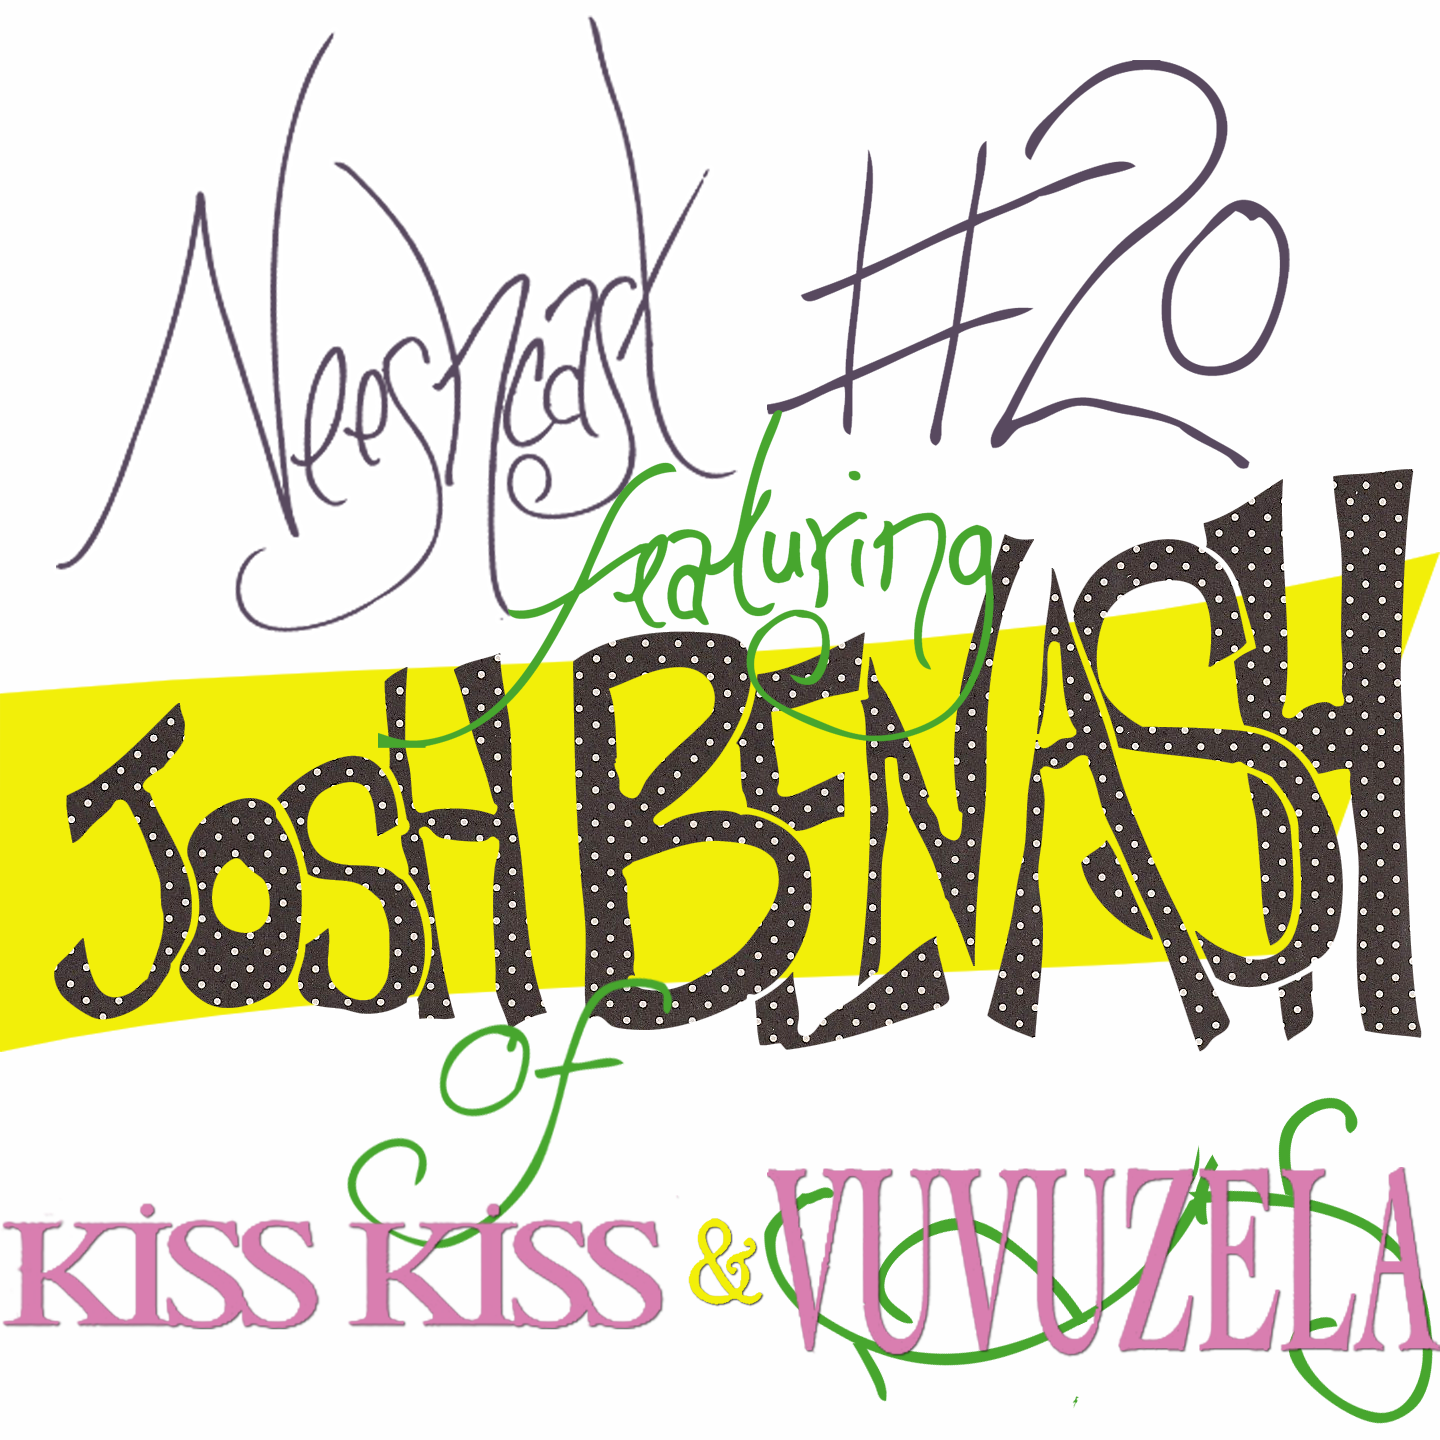 Butthole Kiss neeshcast #20 // part 1 of interview with josh benash (of